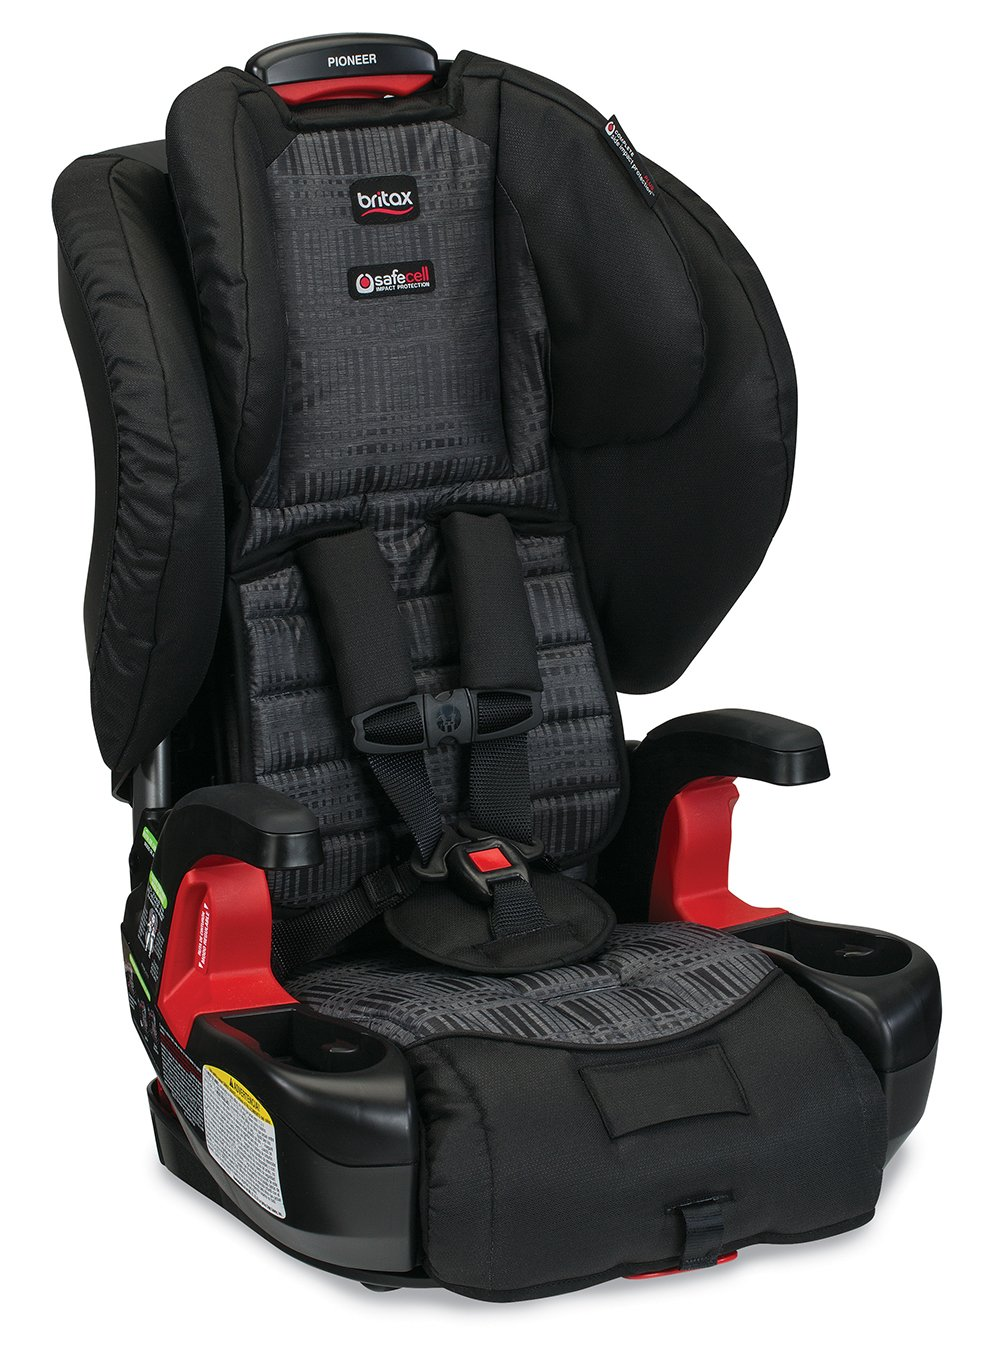 Britax Pioneer Combination Harness-2-Booster Car Seat, Domino E9LZ66C